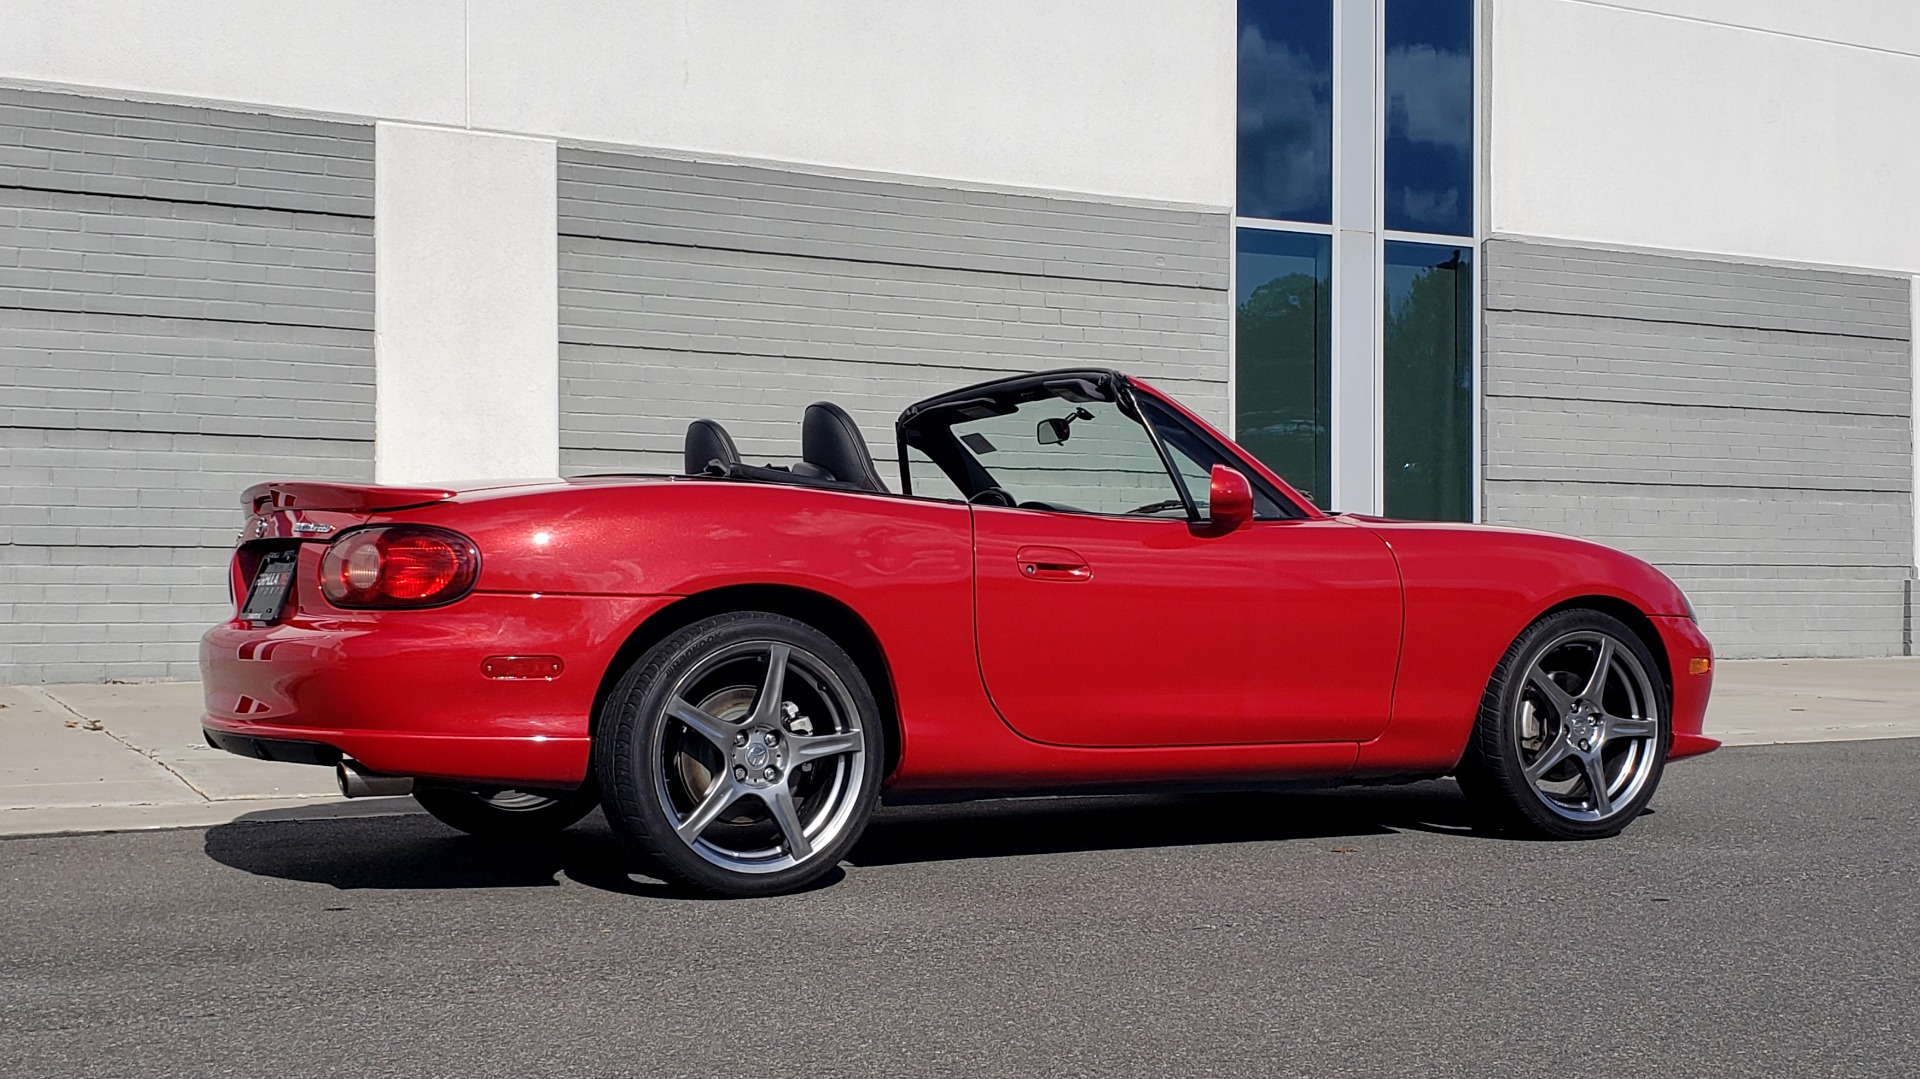 Used 2004 Mazda MX-5 MIATA 2DR CONVERTIBLE MAZDASPEED / GRAND TOURING PKG for sale Sold at Formula Imports in Charlotte NC 28227 8